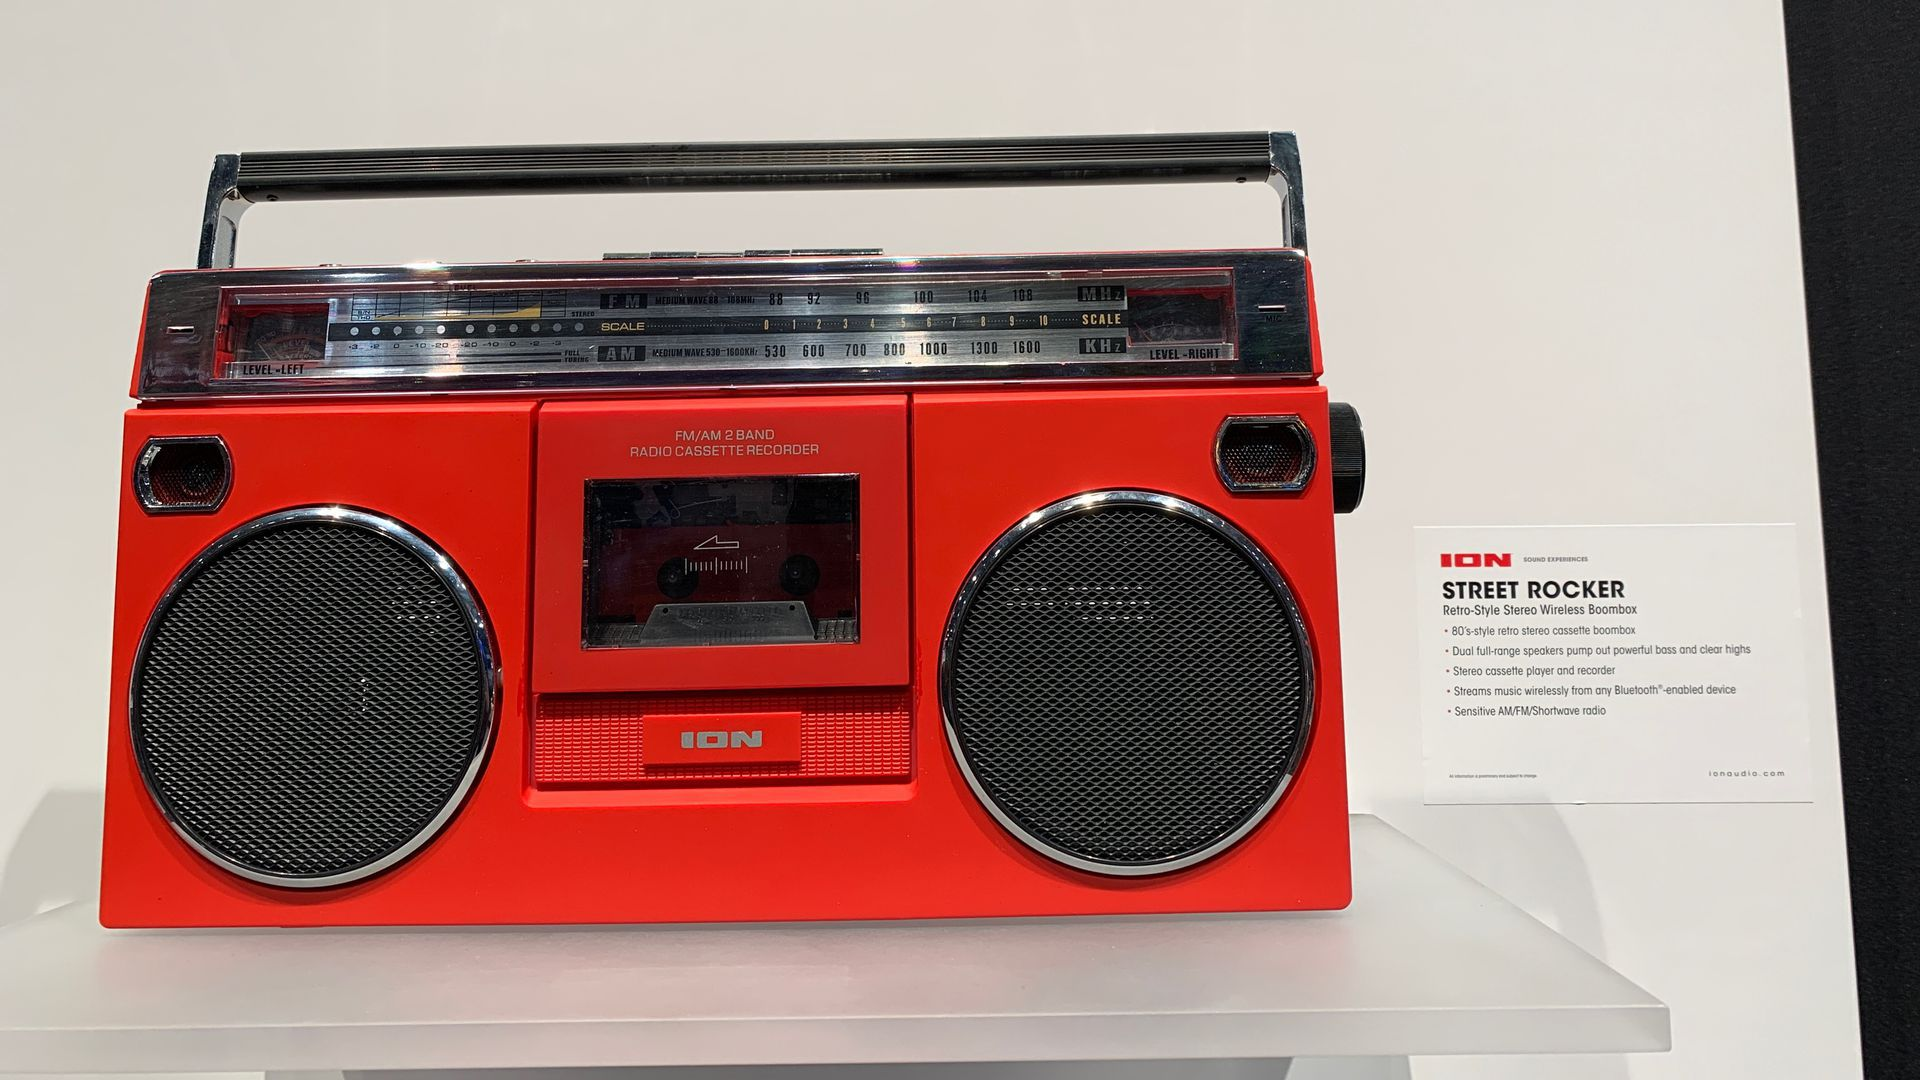 A red boombox